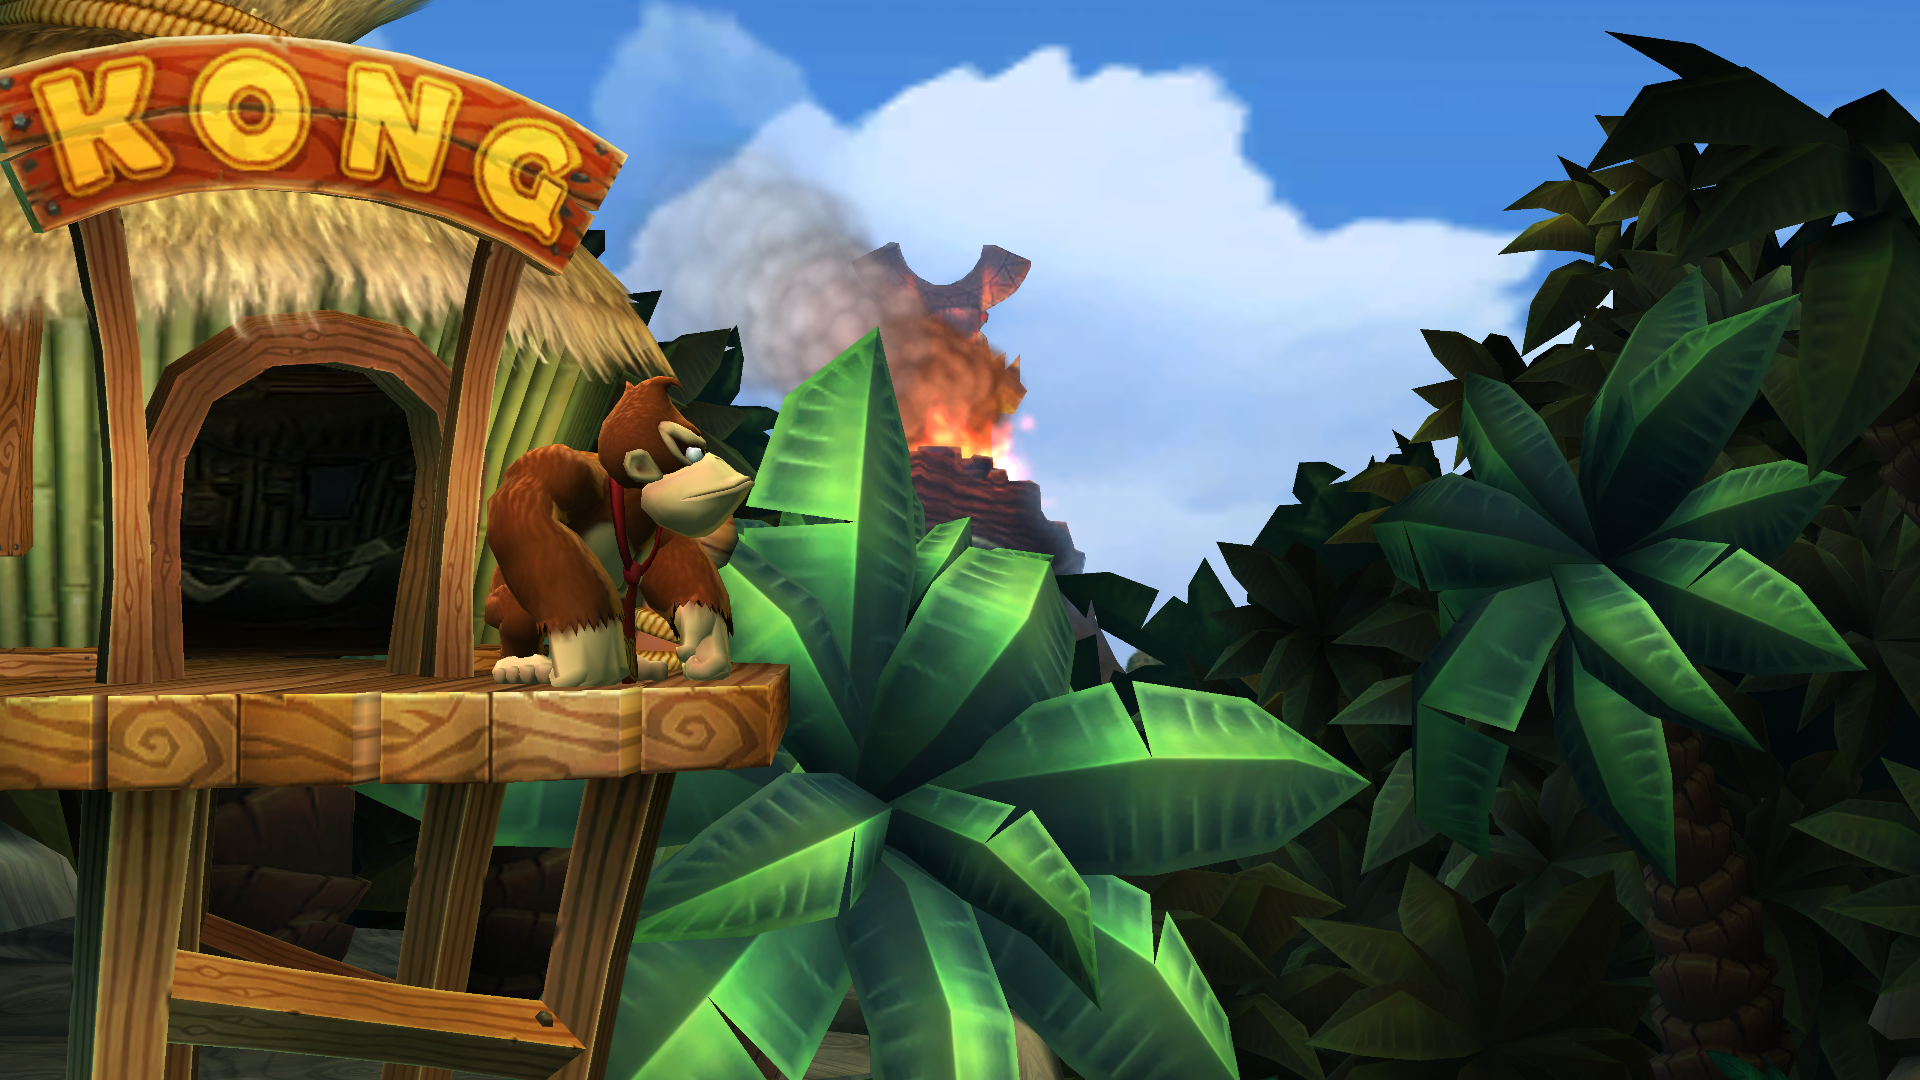 Donkey kong 39 s treehouse donkey kong wiki the for The house returns